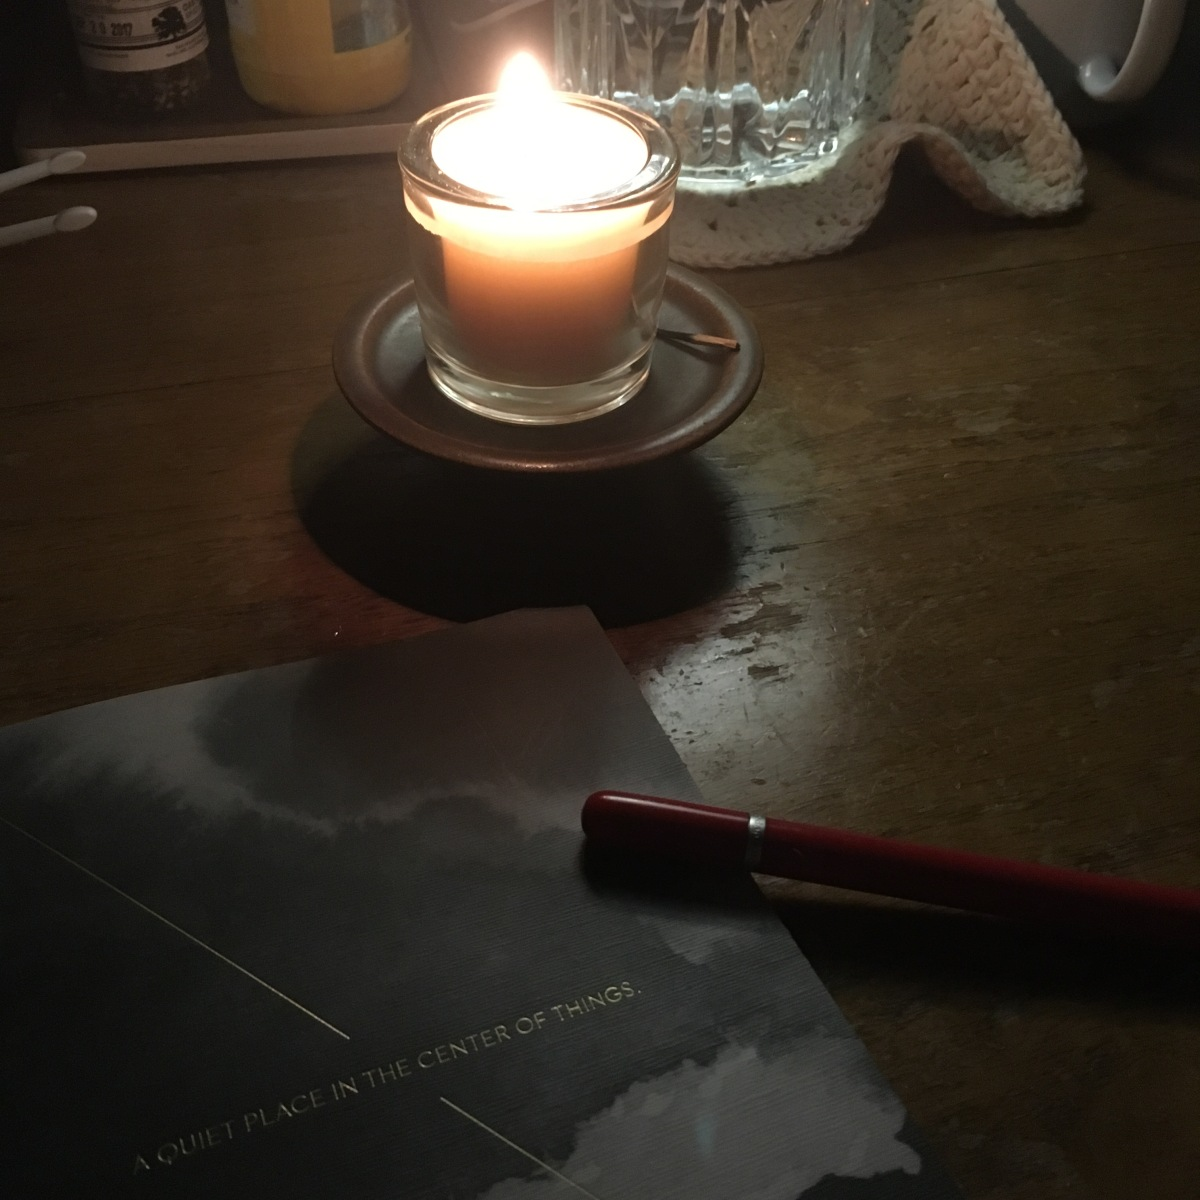 A lit candle at night, with a journal and pen nearby